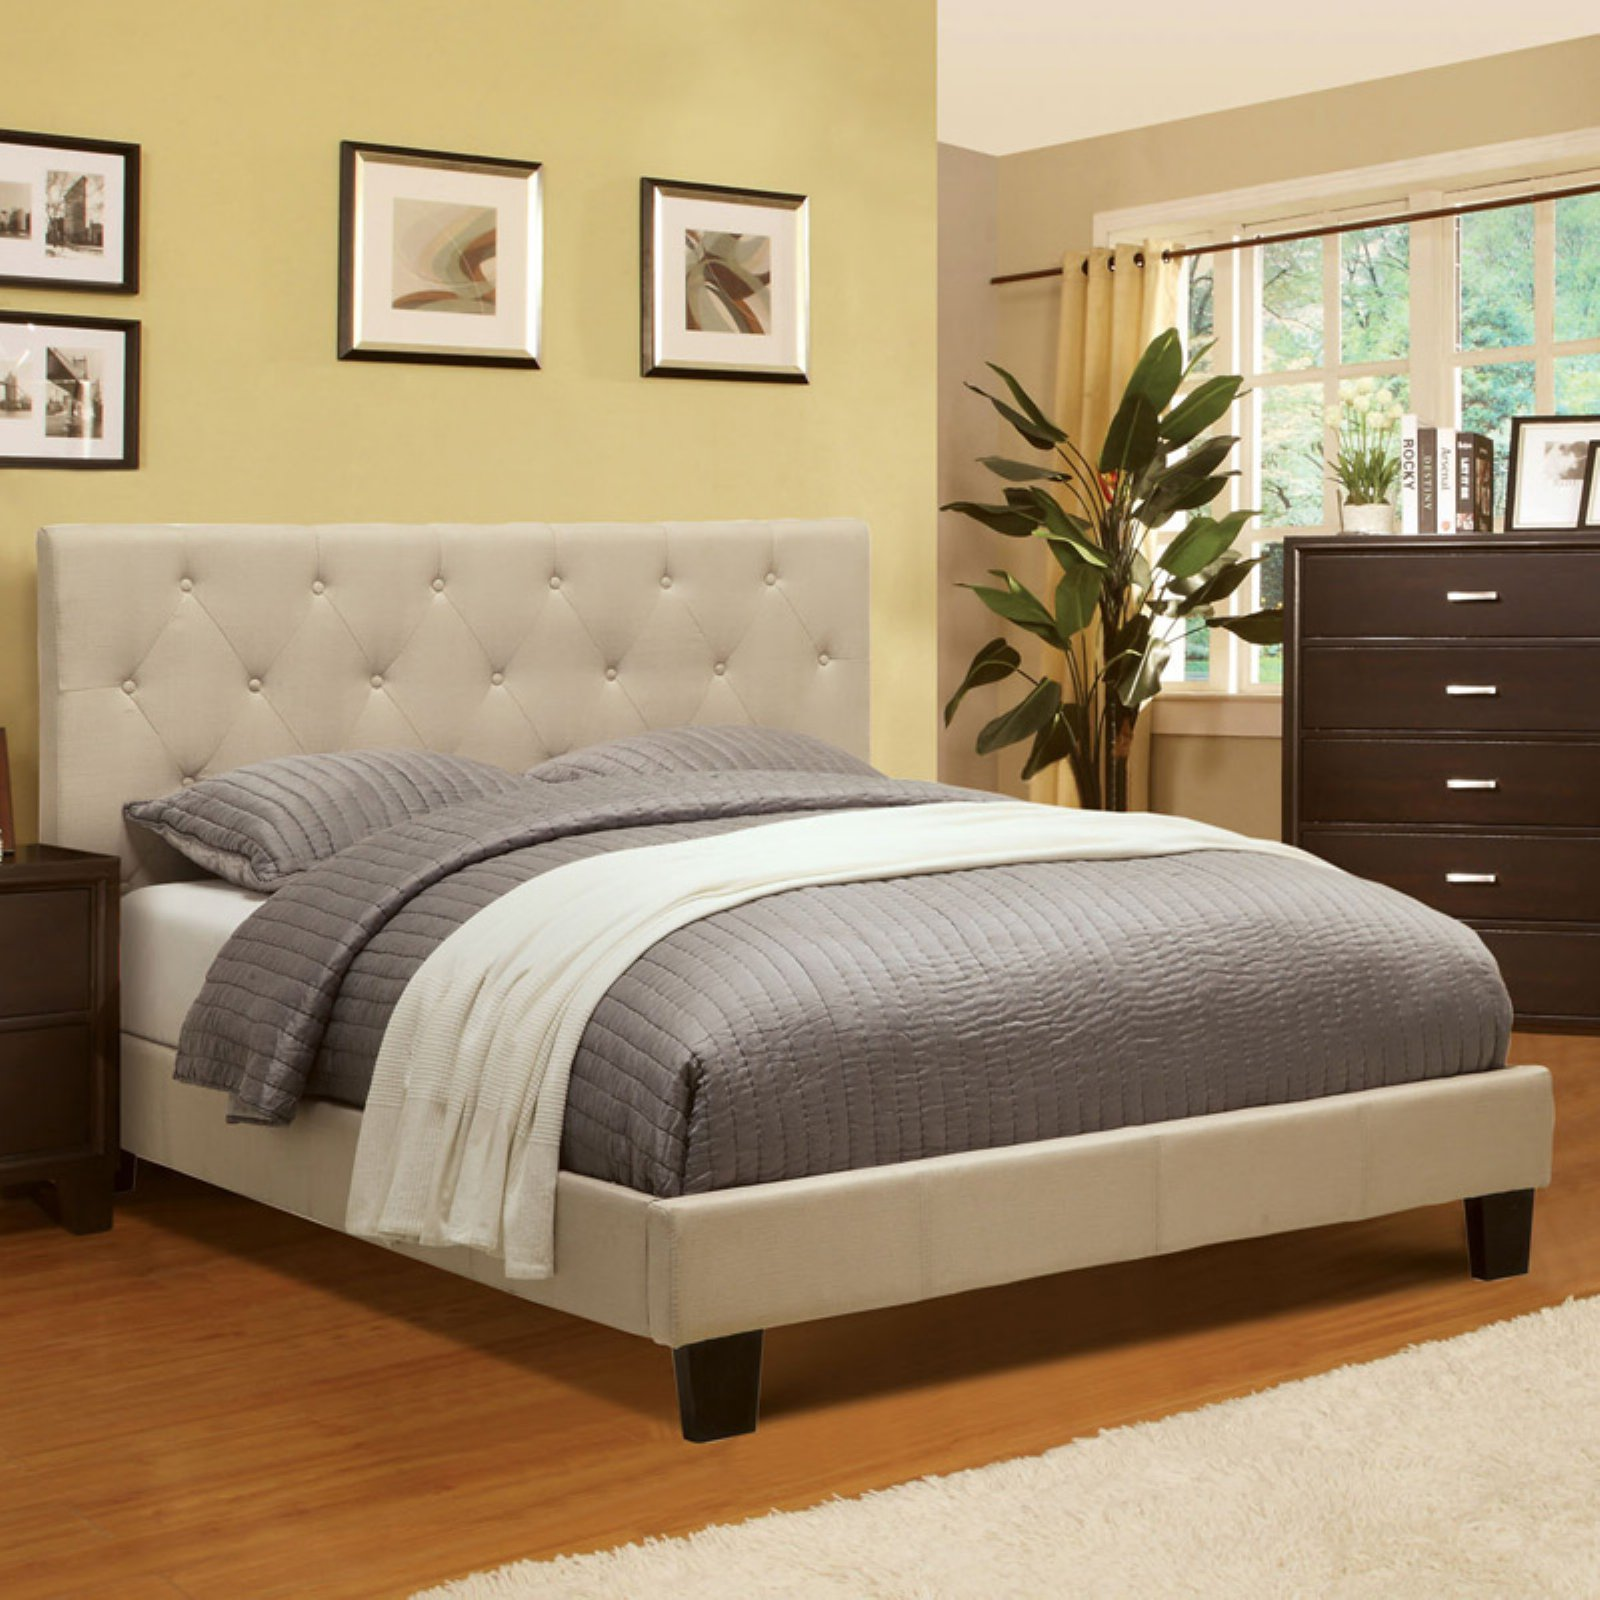 Furniture of America Wendy Tufted Platform Bed - Ivory